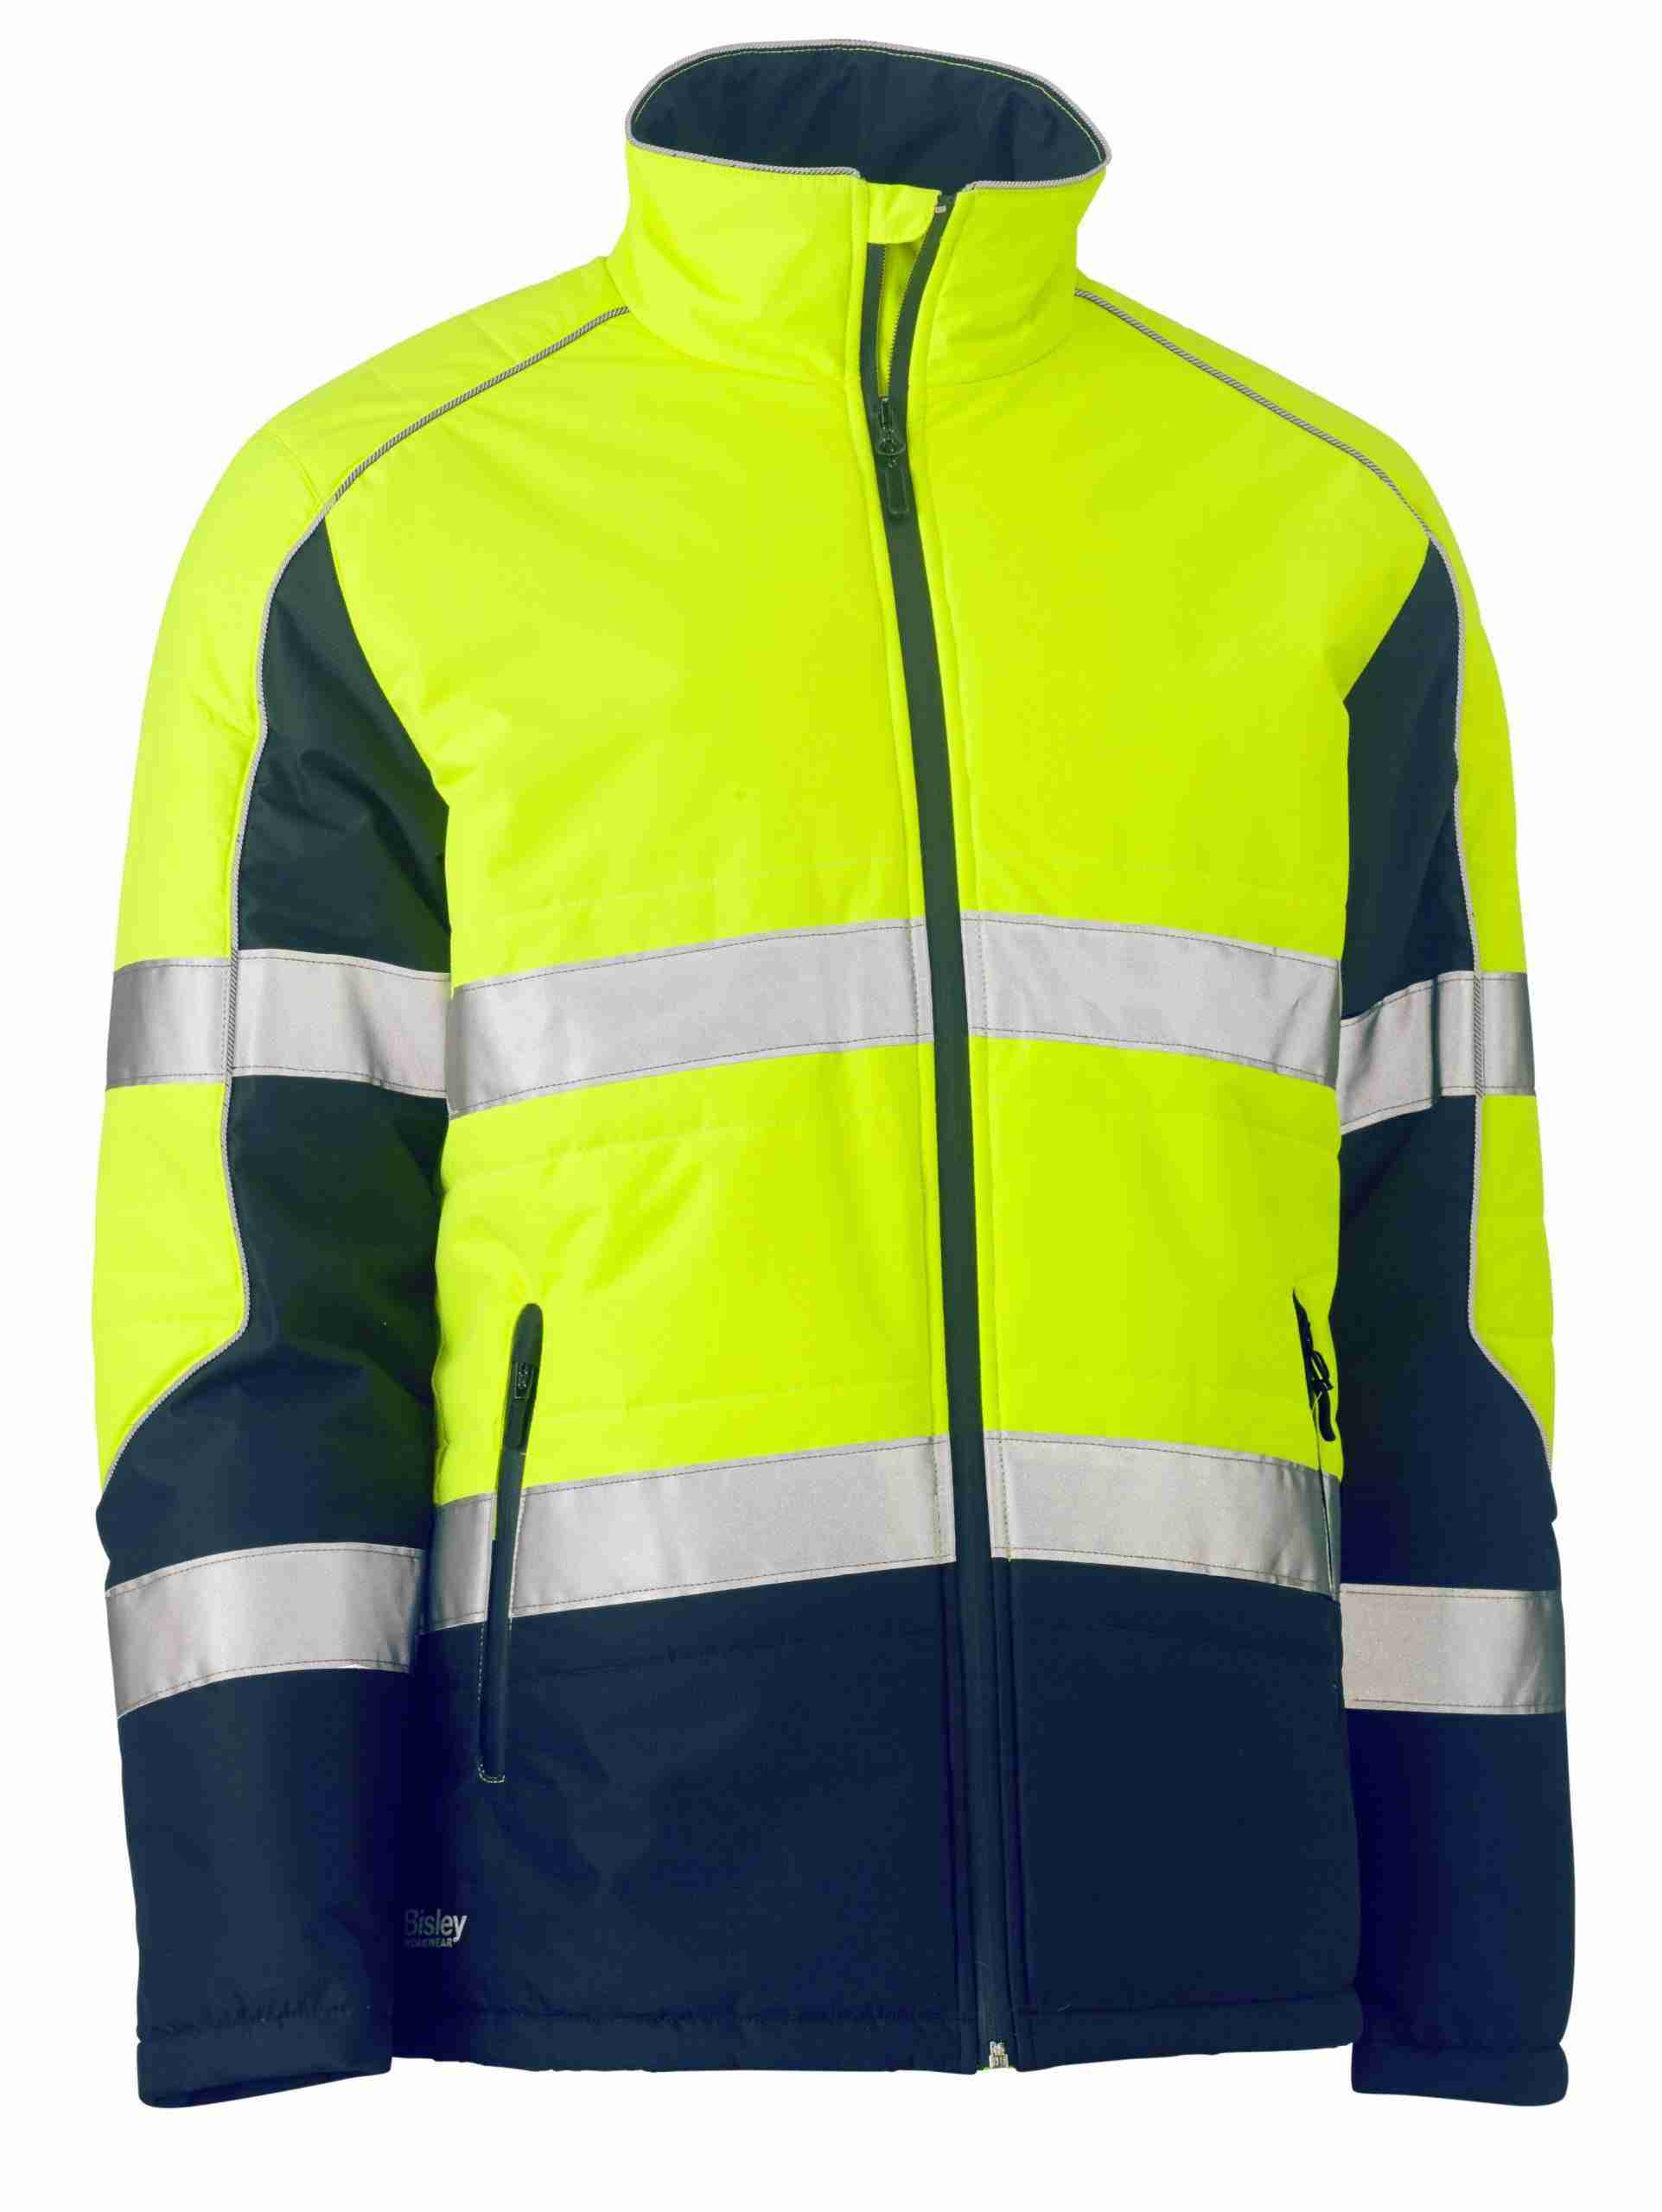 Bisley Taped Two Tone Hi-Vis Puffer Jacket